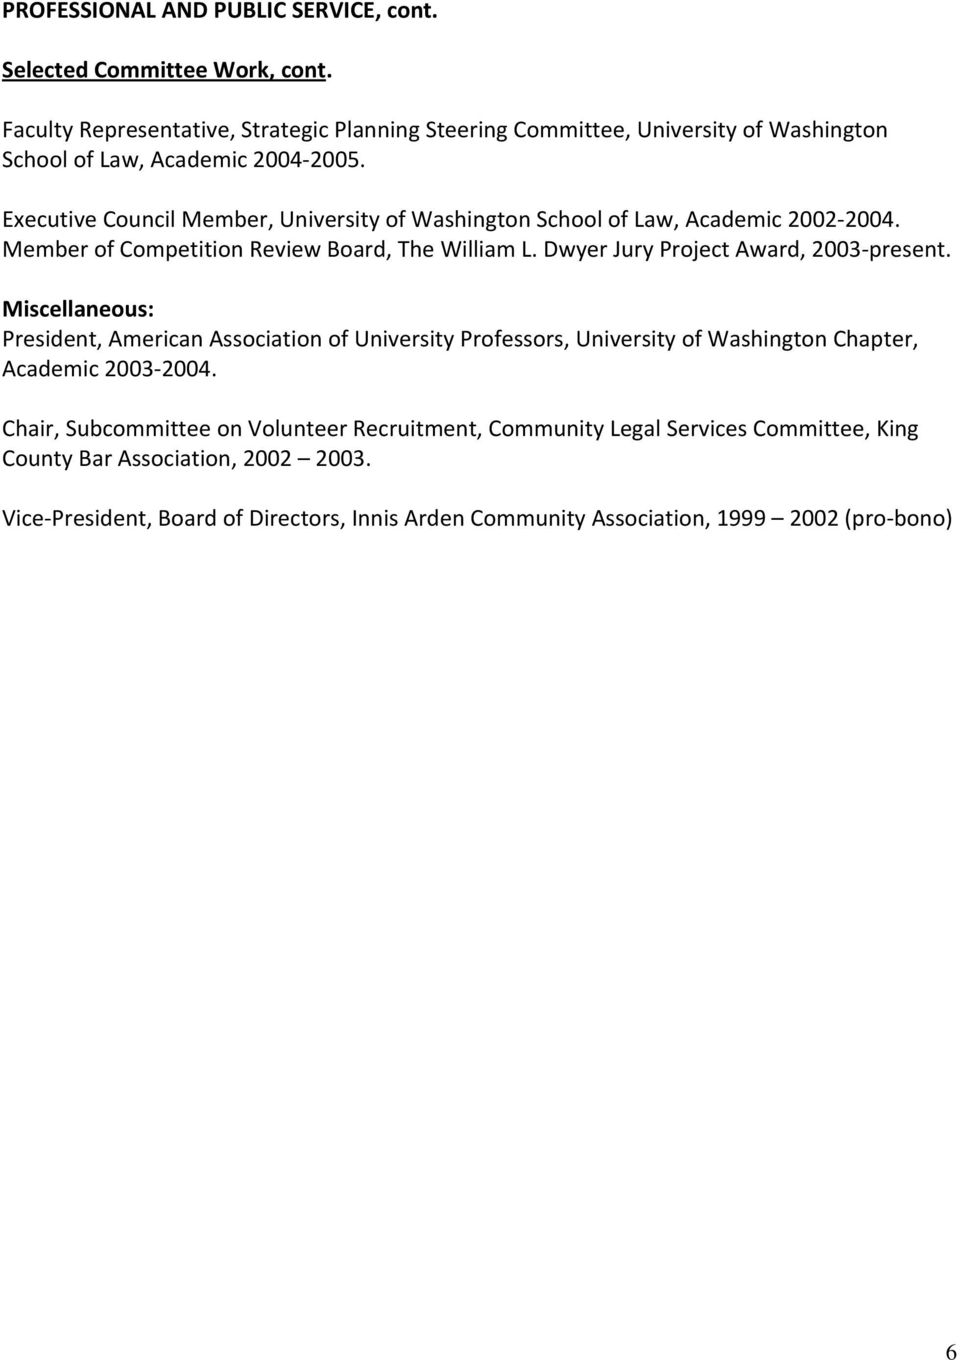 Executive Council Member, University of Washington School of Law, Academic 2002 2004. Member of Competition Review Board, The William L. Dwyer Jury Project Award, 2003 present.